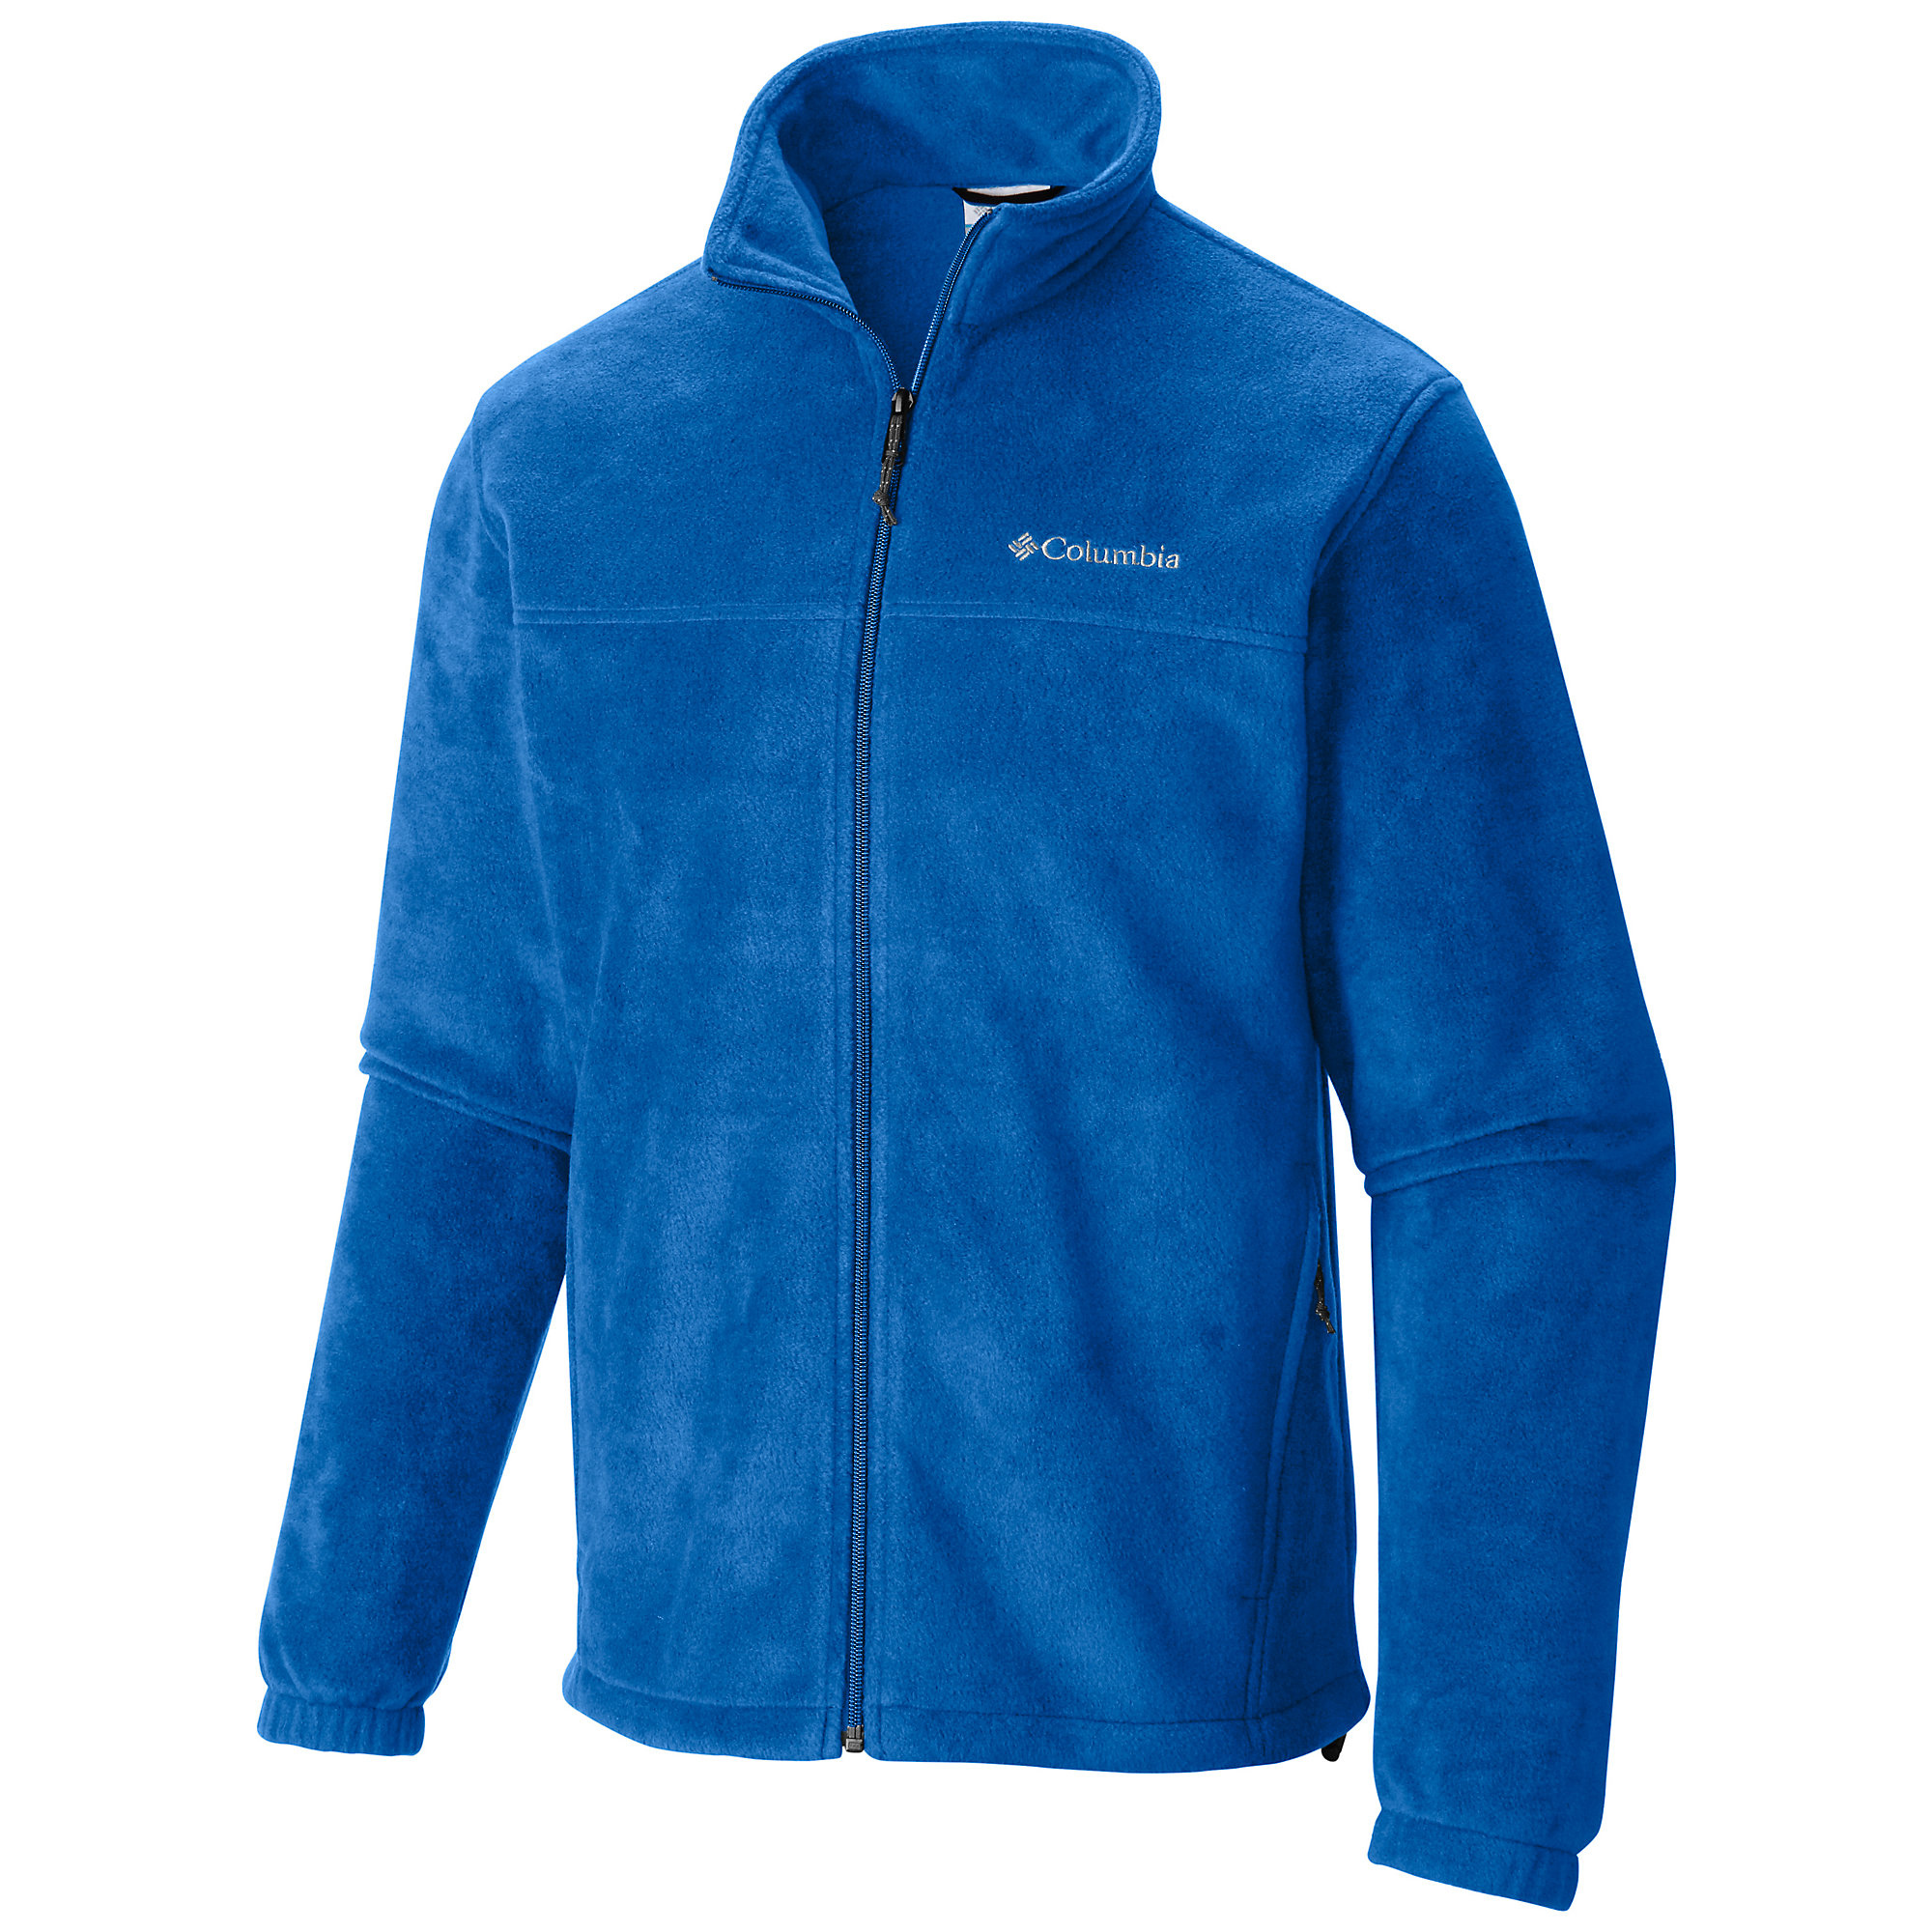 photo: Columbia Men's Steens Mountain Full Zip